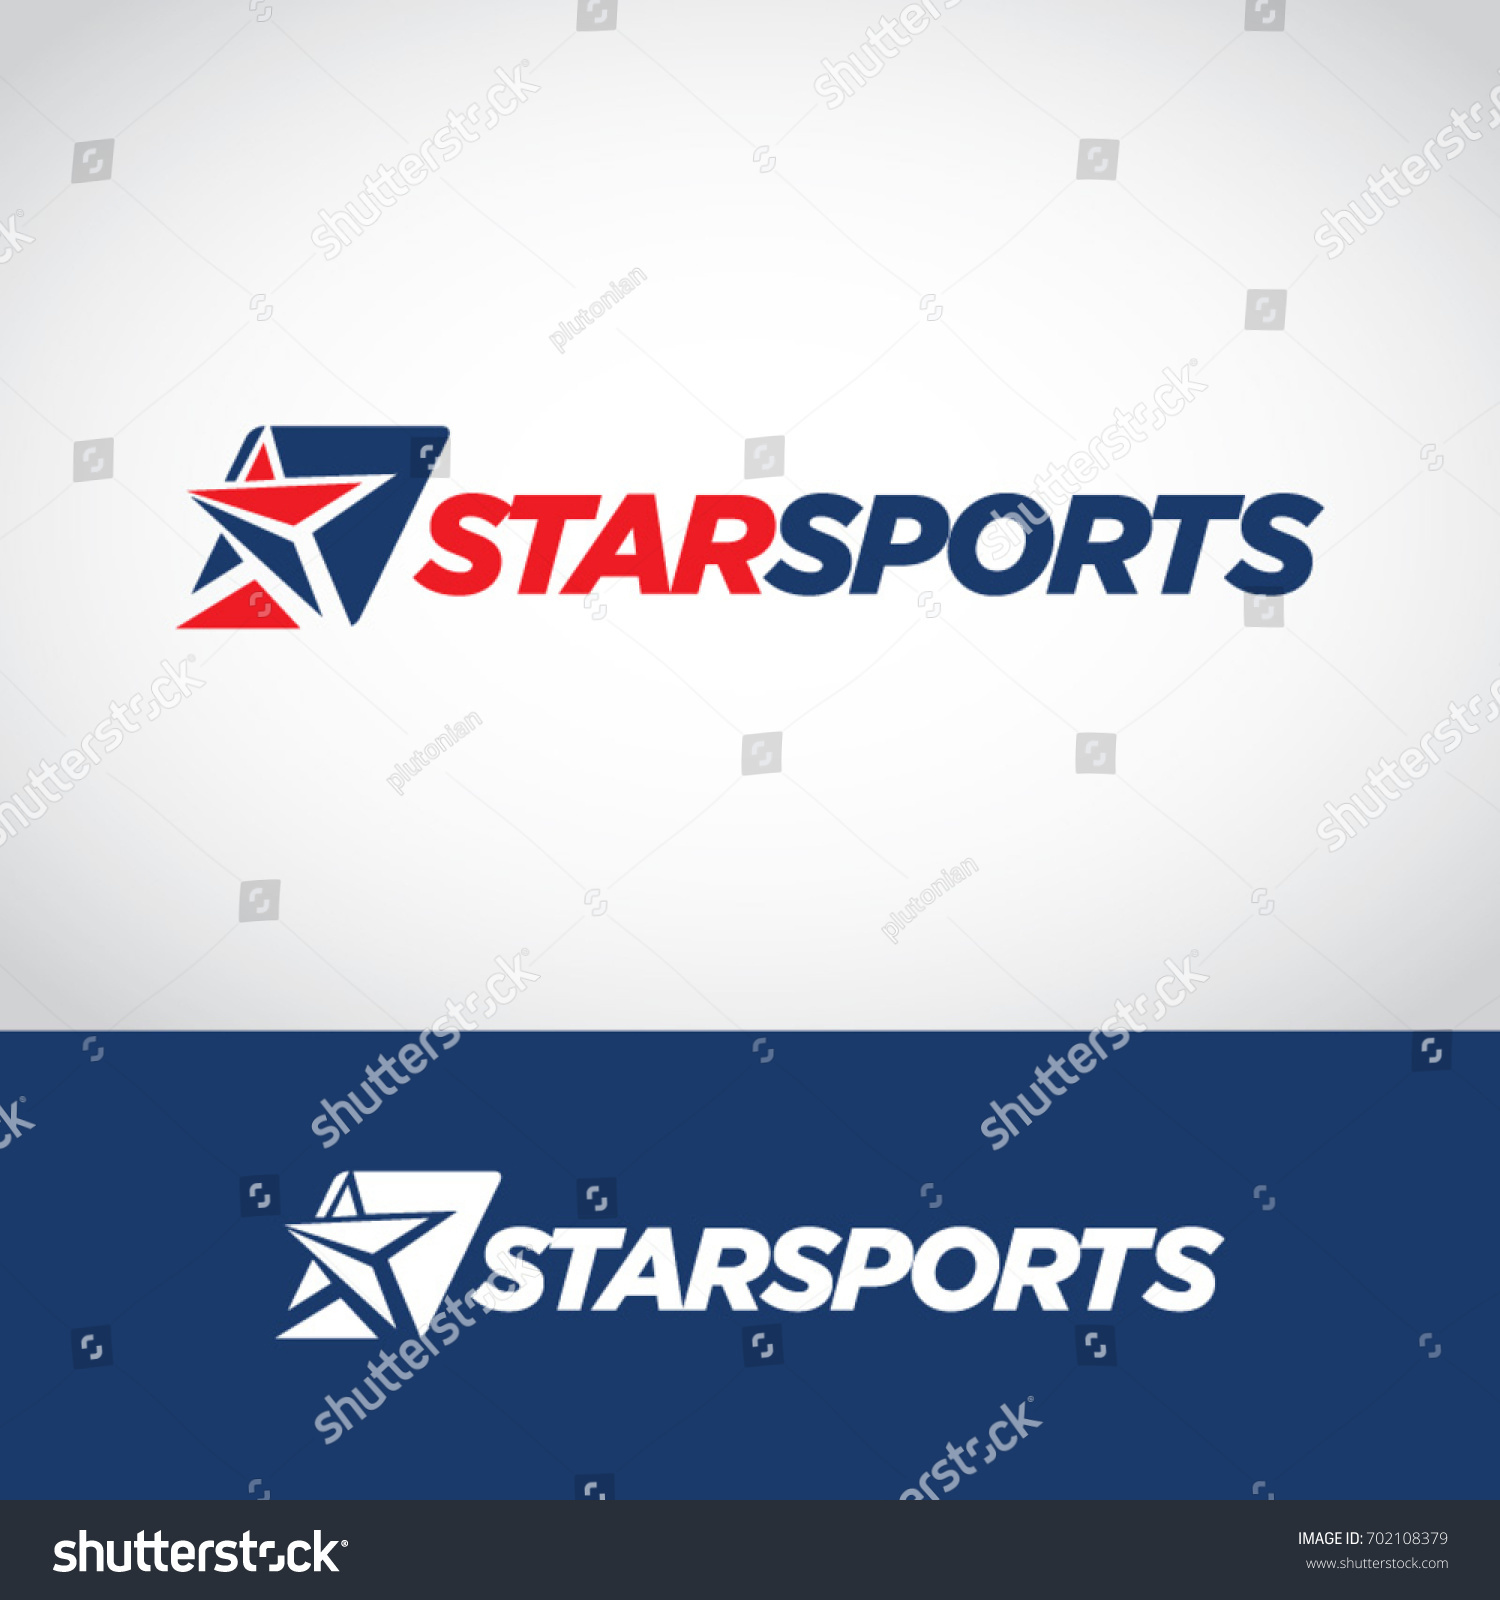 Abstract blue red sport star logo stock vector 702108379 abstract blue red sport star logo symbol buycottarizona